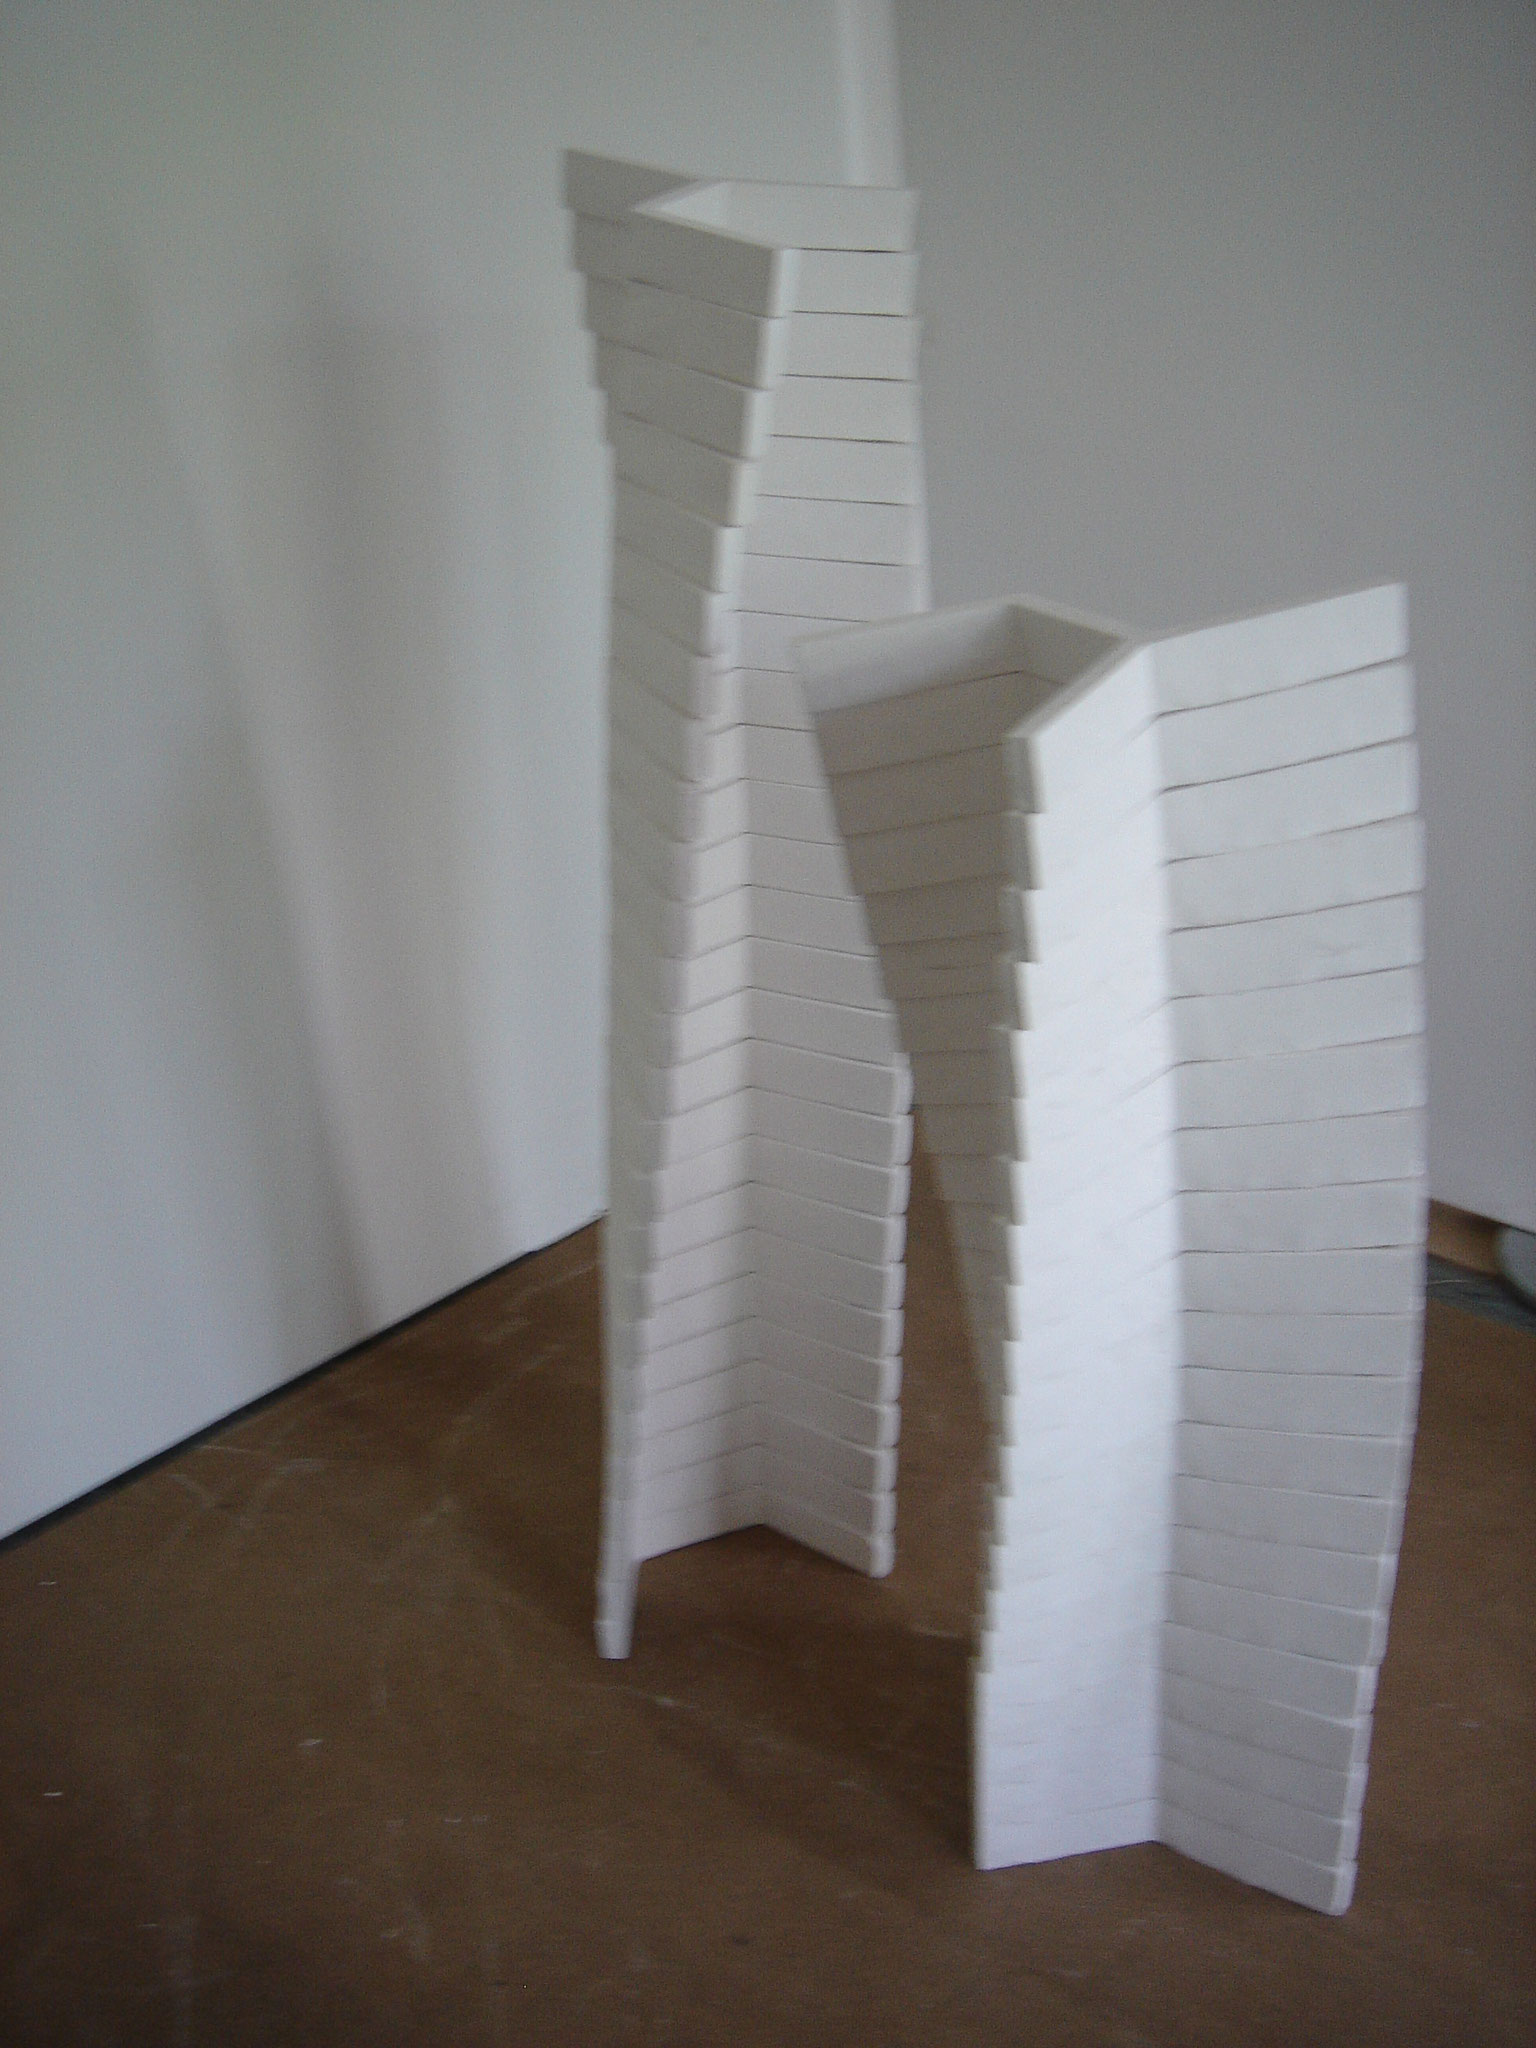 Turning towers; Gipsmodule 180 x 160 cm